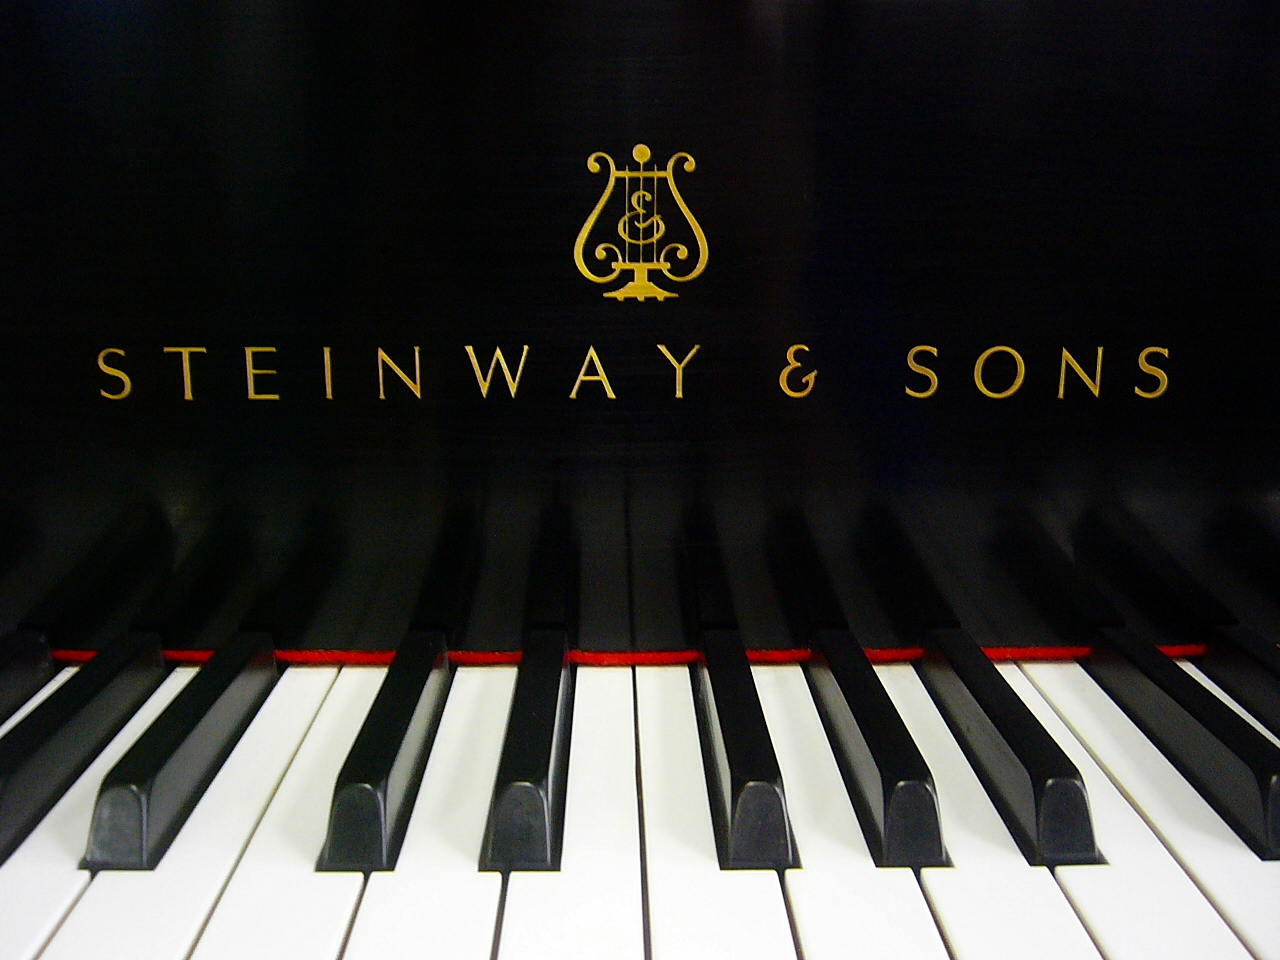 Dr Graves Inducted Into Steinway Sons Hall Of Fame